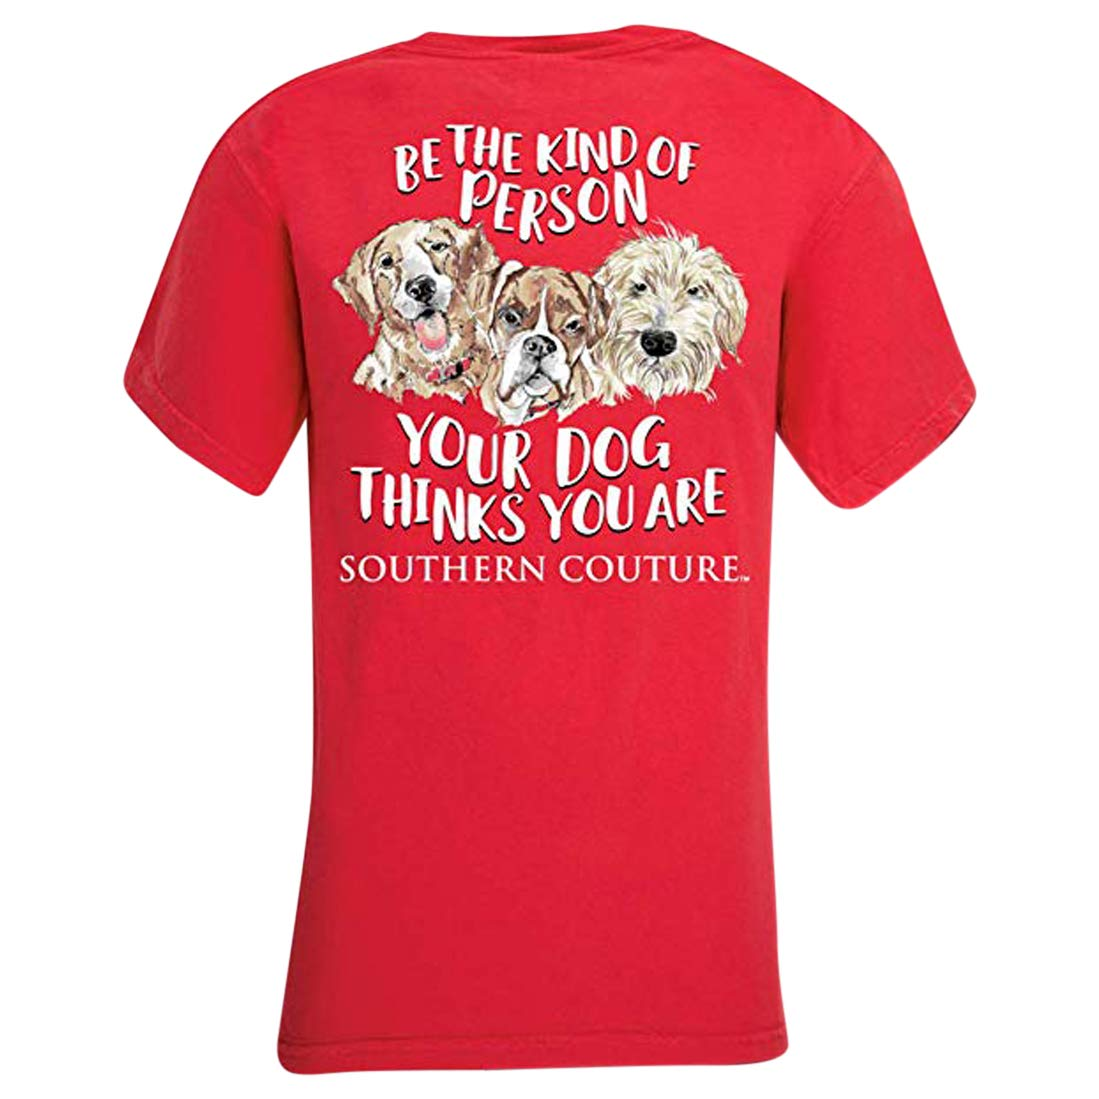 Be The Kind of Person Paprika Comfort Cotton Blend Novelty T-Shirt X-Large